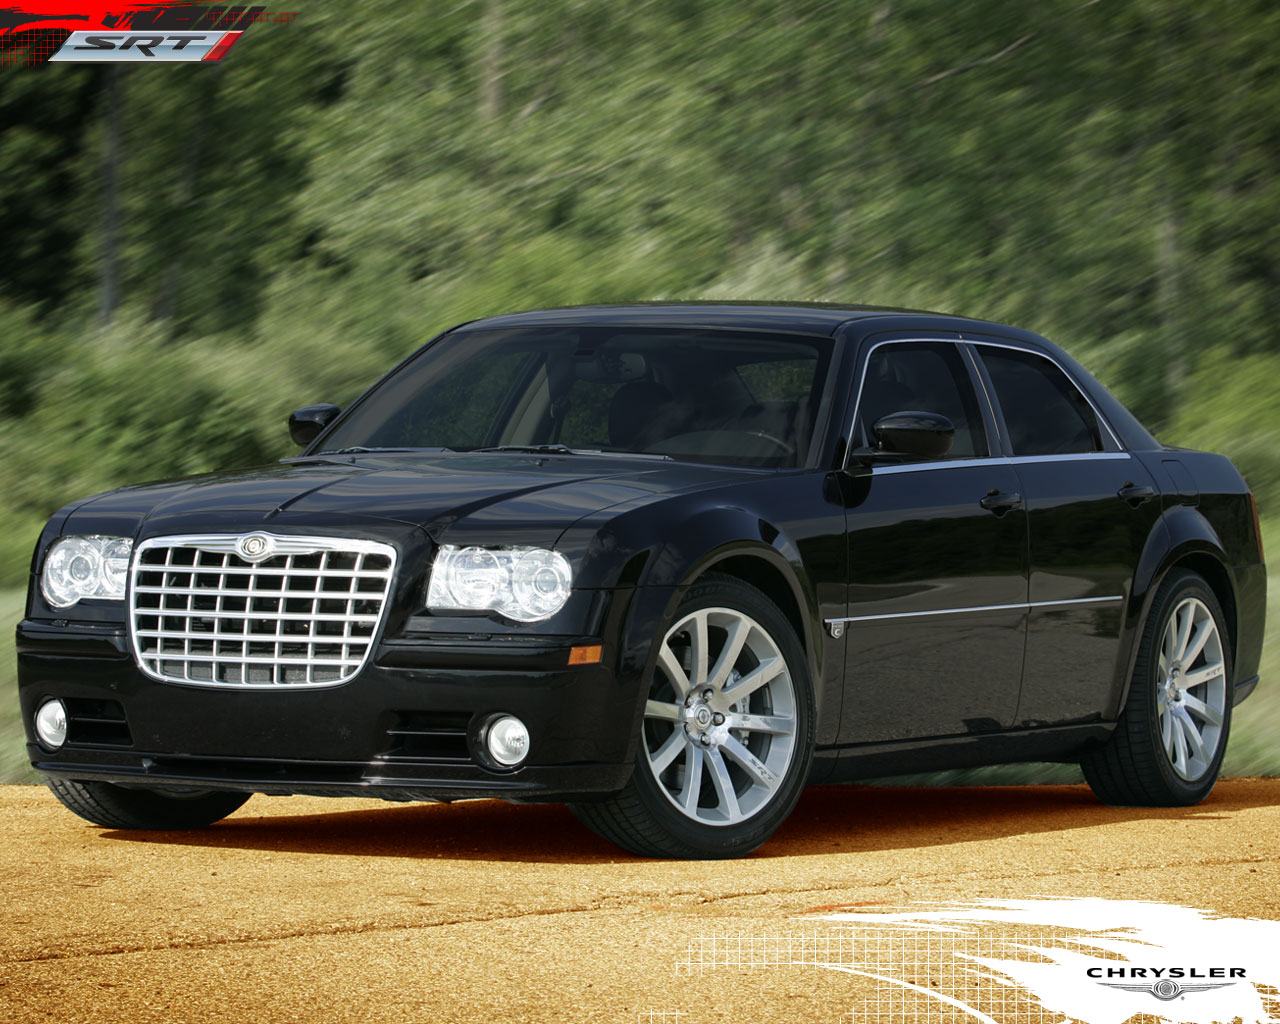 chrysler 300c srt hintergrundbilder chrysler 300c srt frei fotos. Black Bedroom Furniture Sets. Home Design Ideas